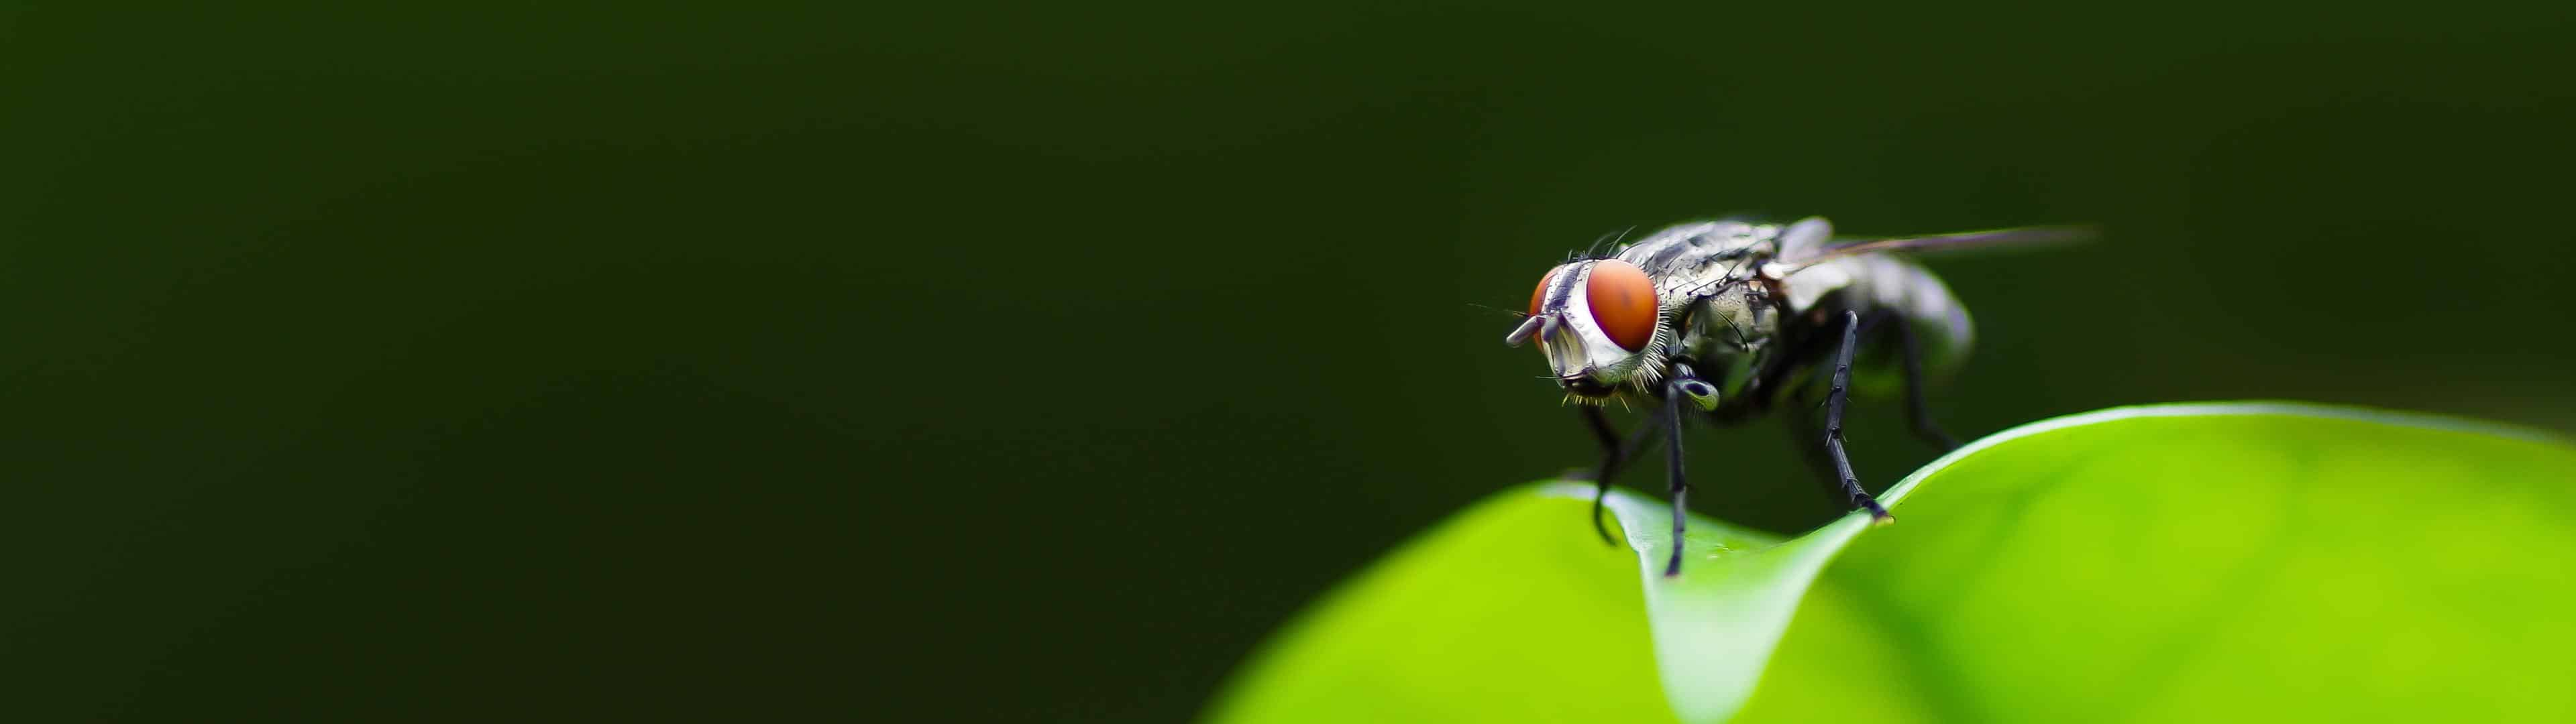 Housefly Dual Monitor Wallpapers